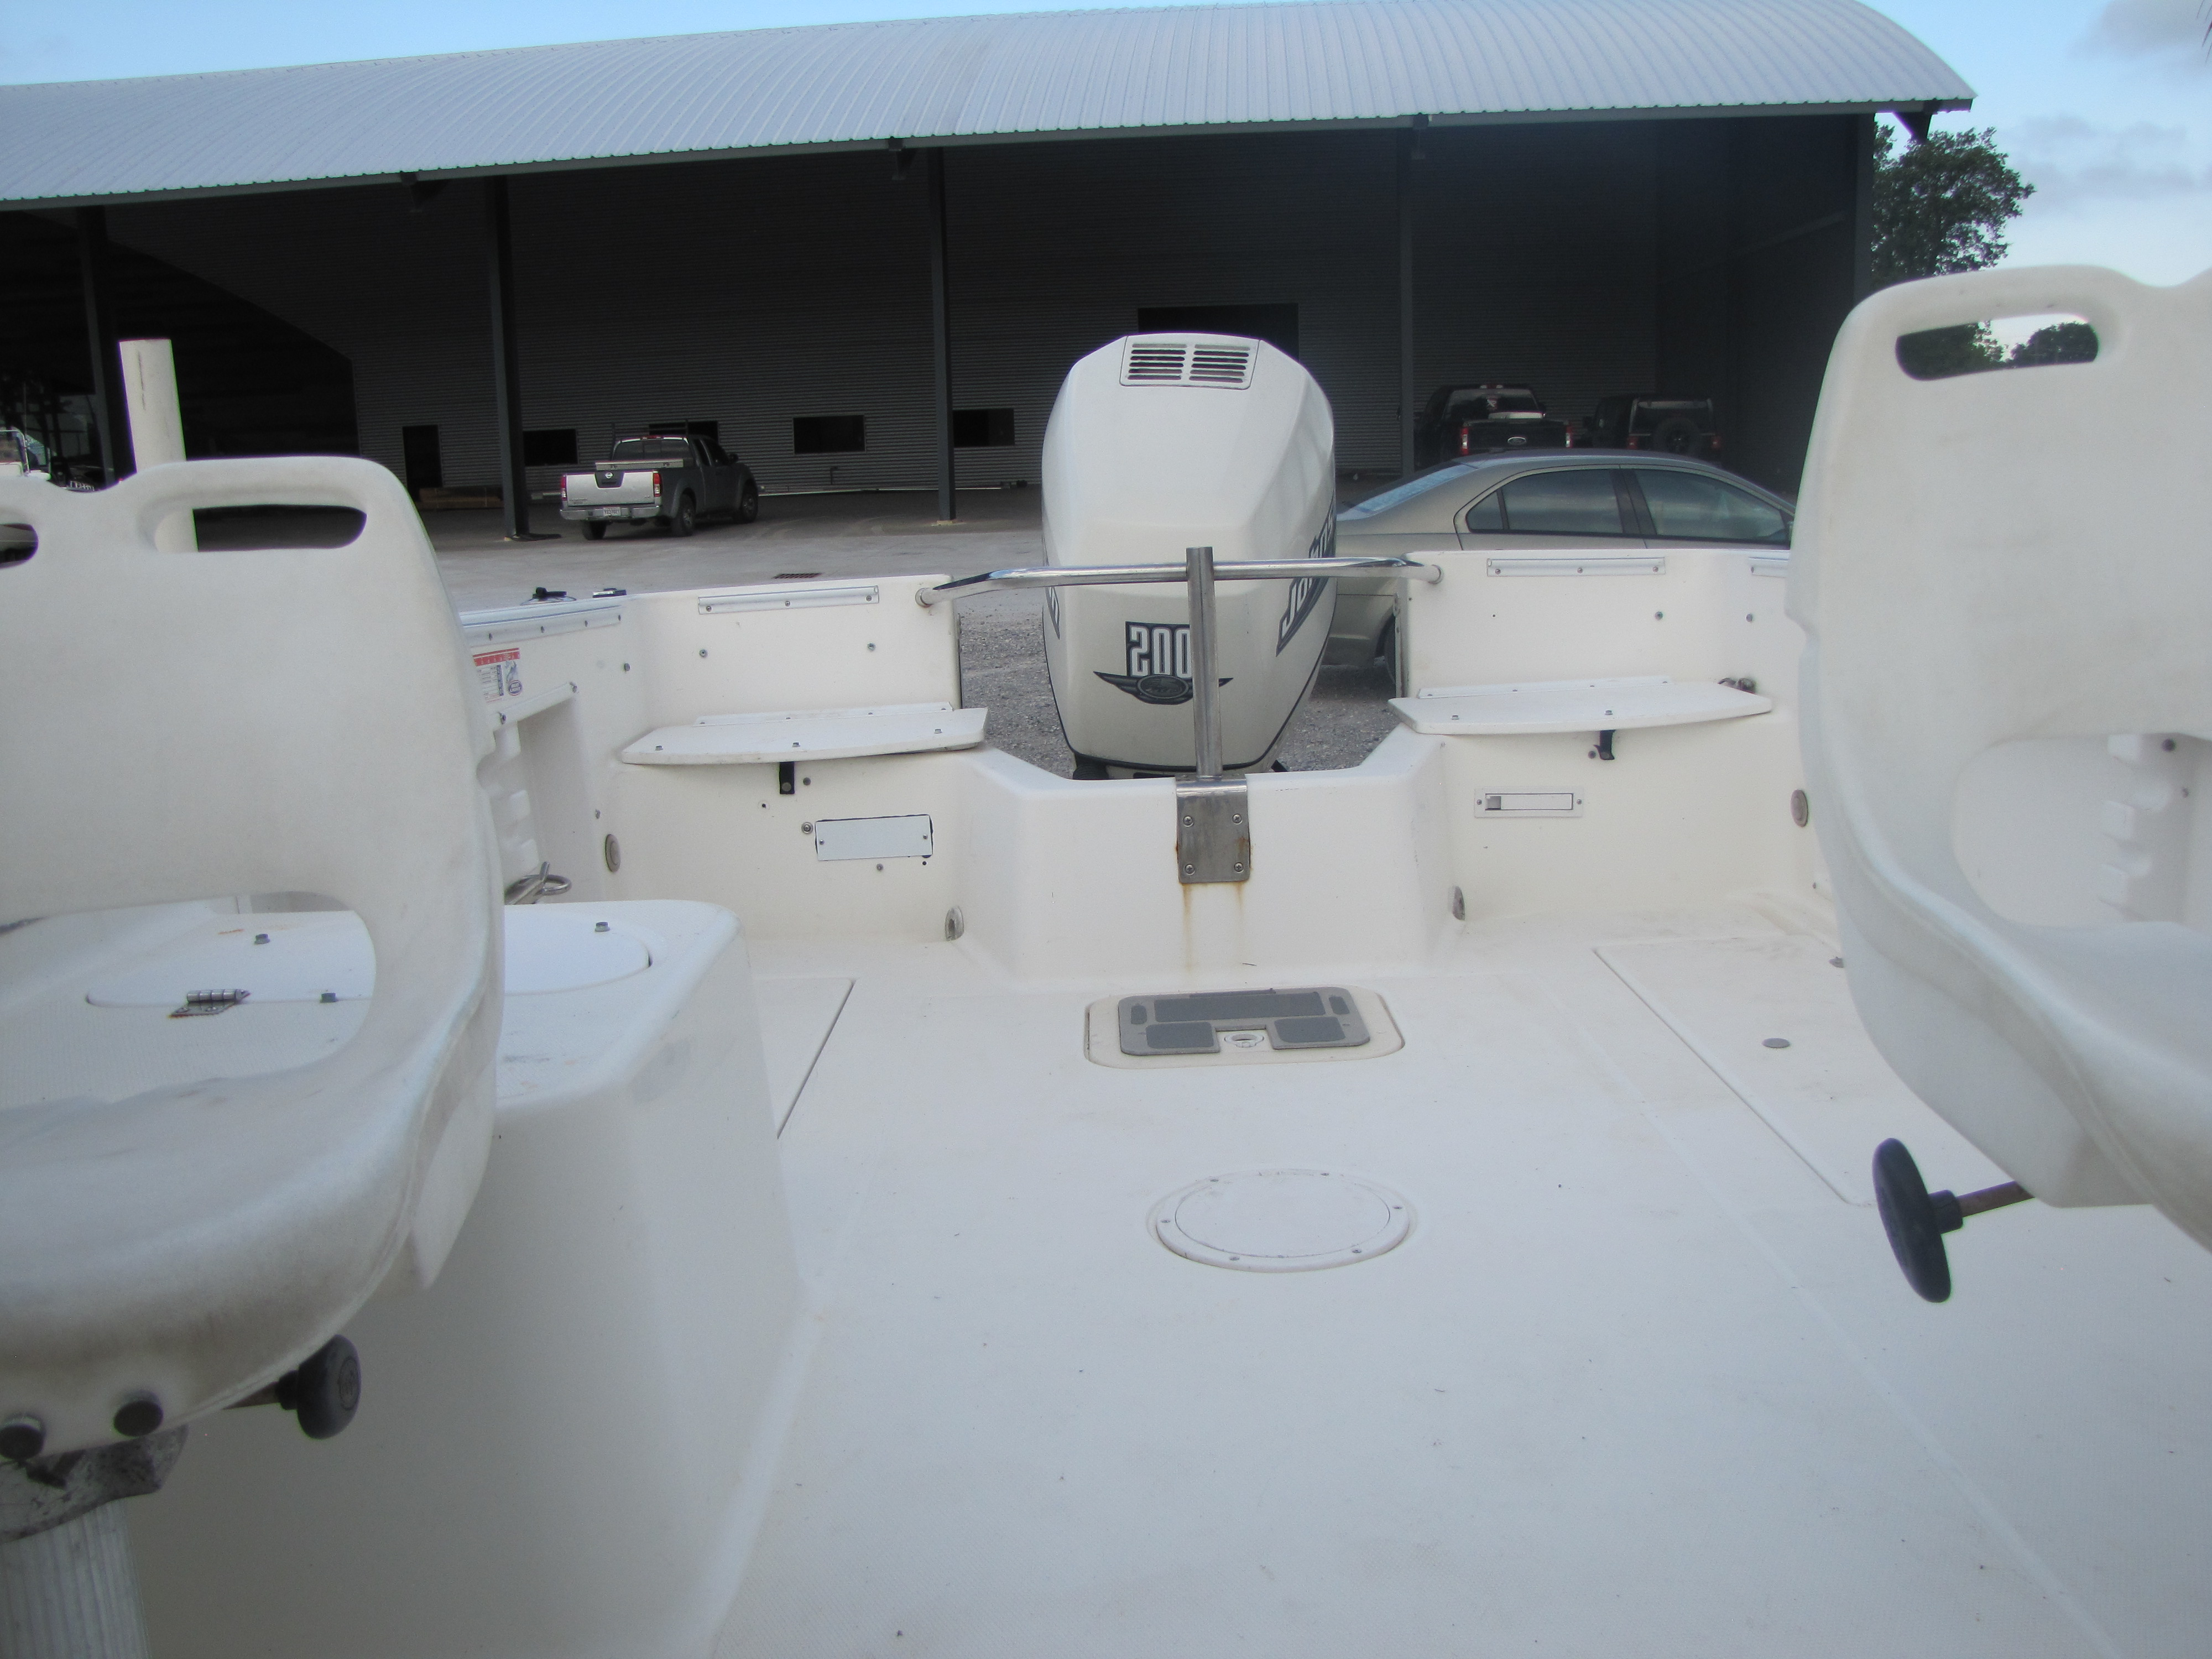 2000 Aquasport boat for sale, model of the boat is 215 Osprey Sport & Image # 10 of 21